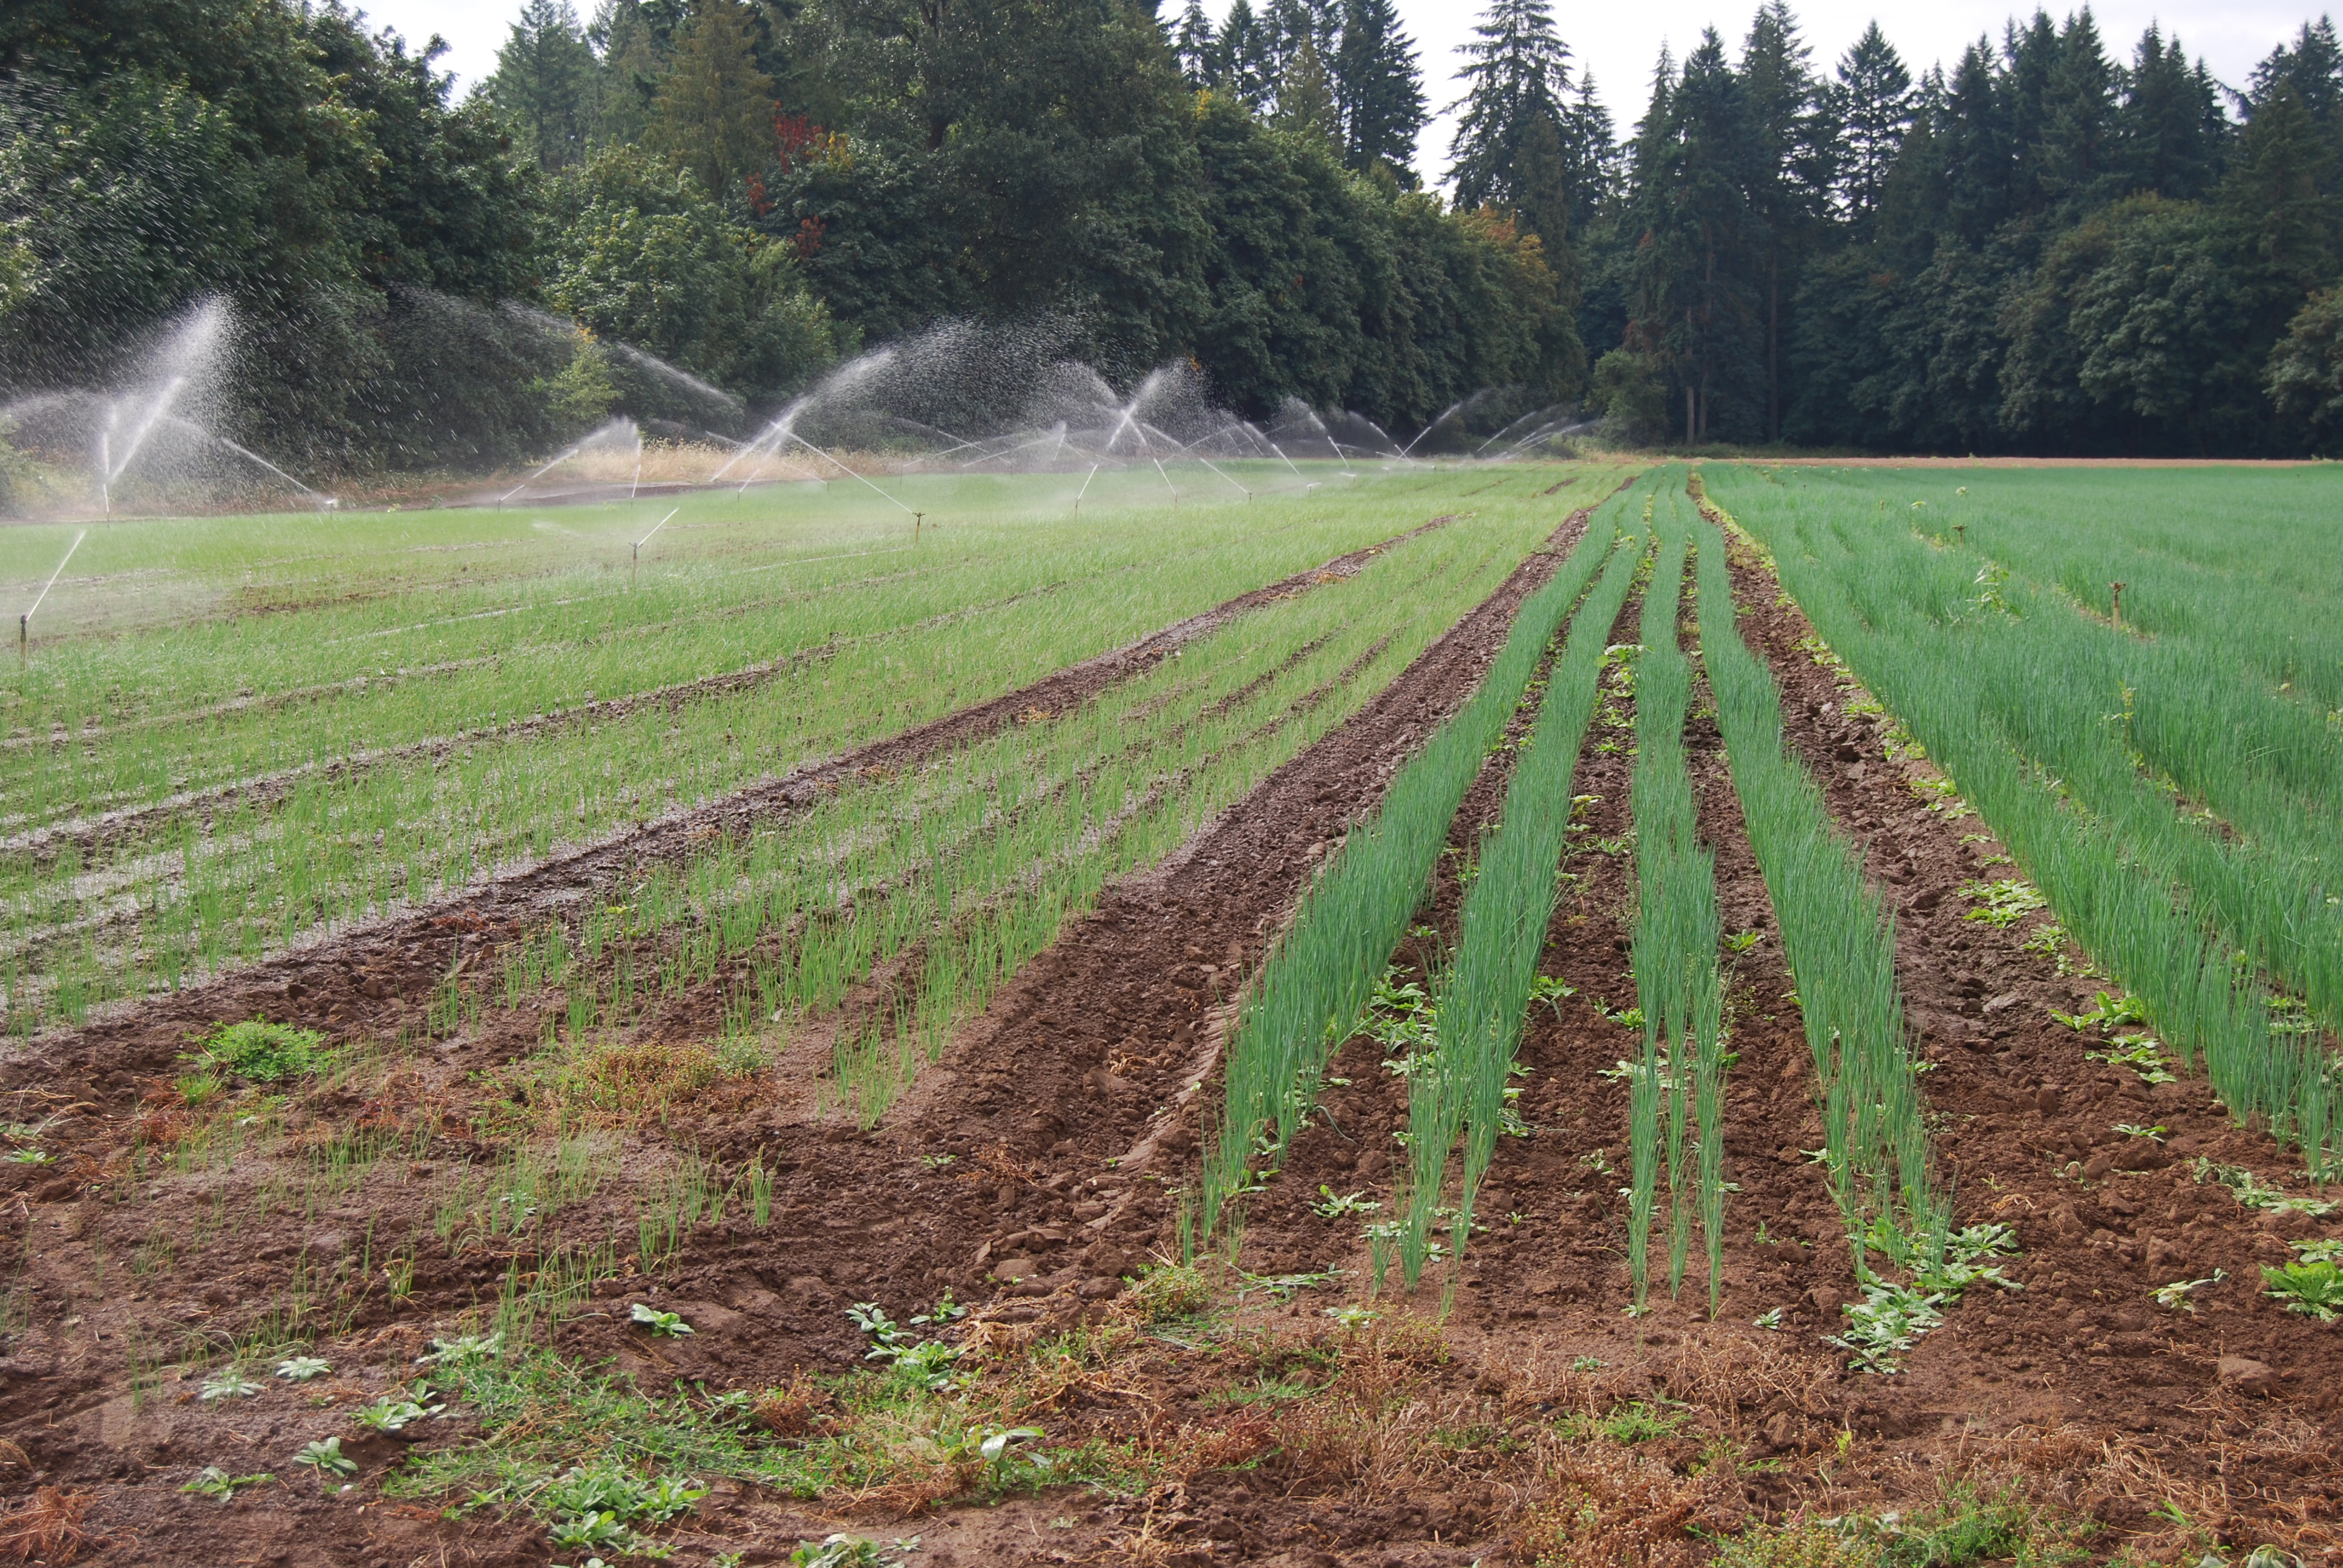 green onions being irrigated in a field